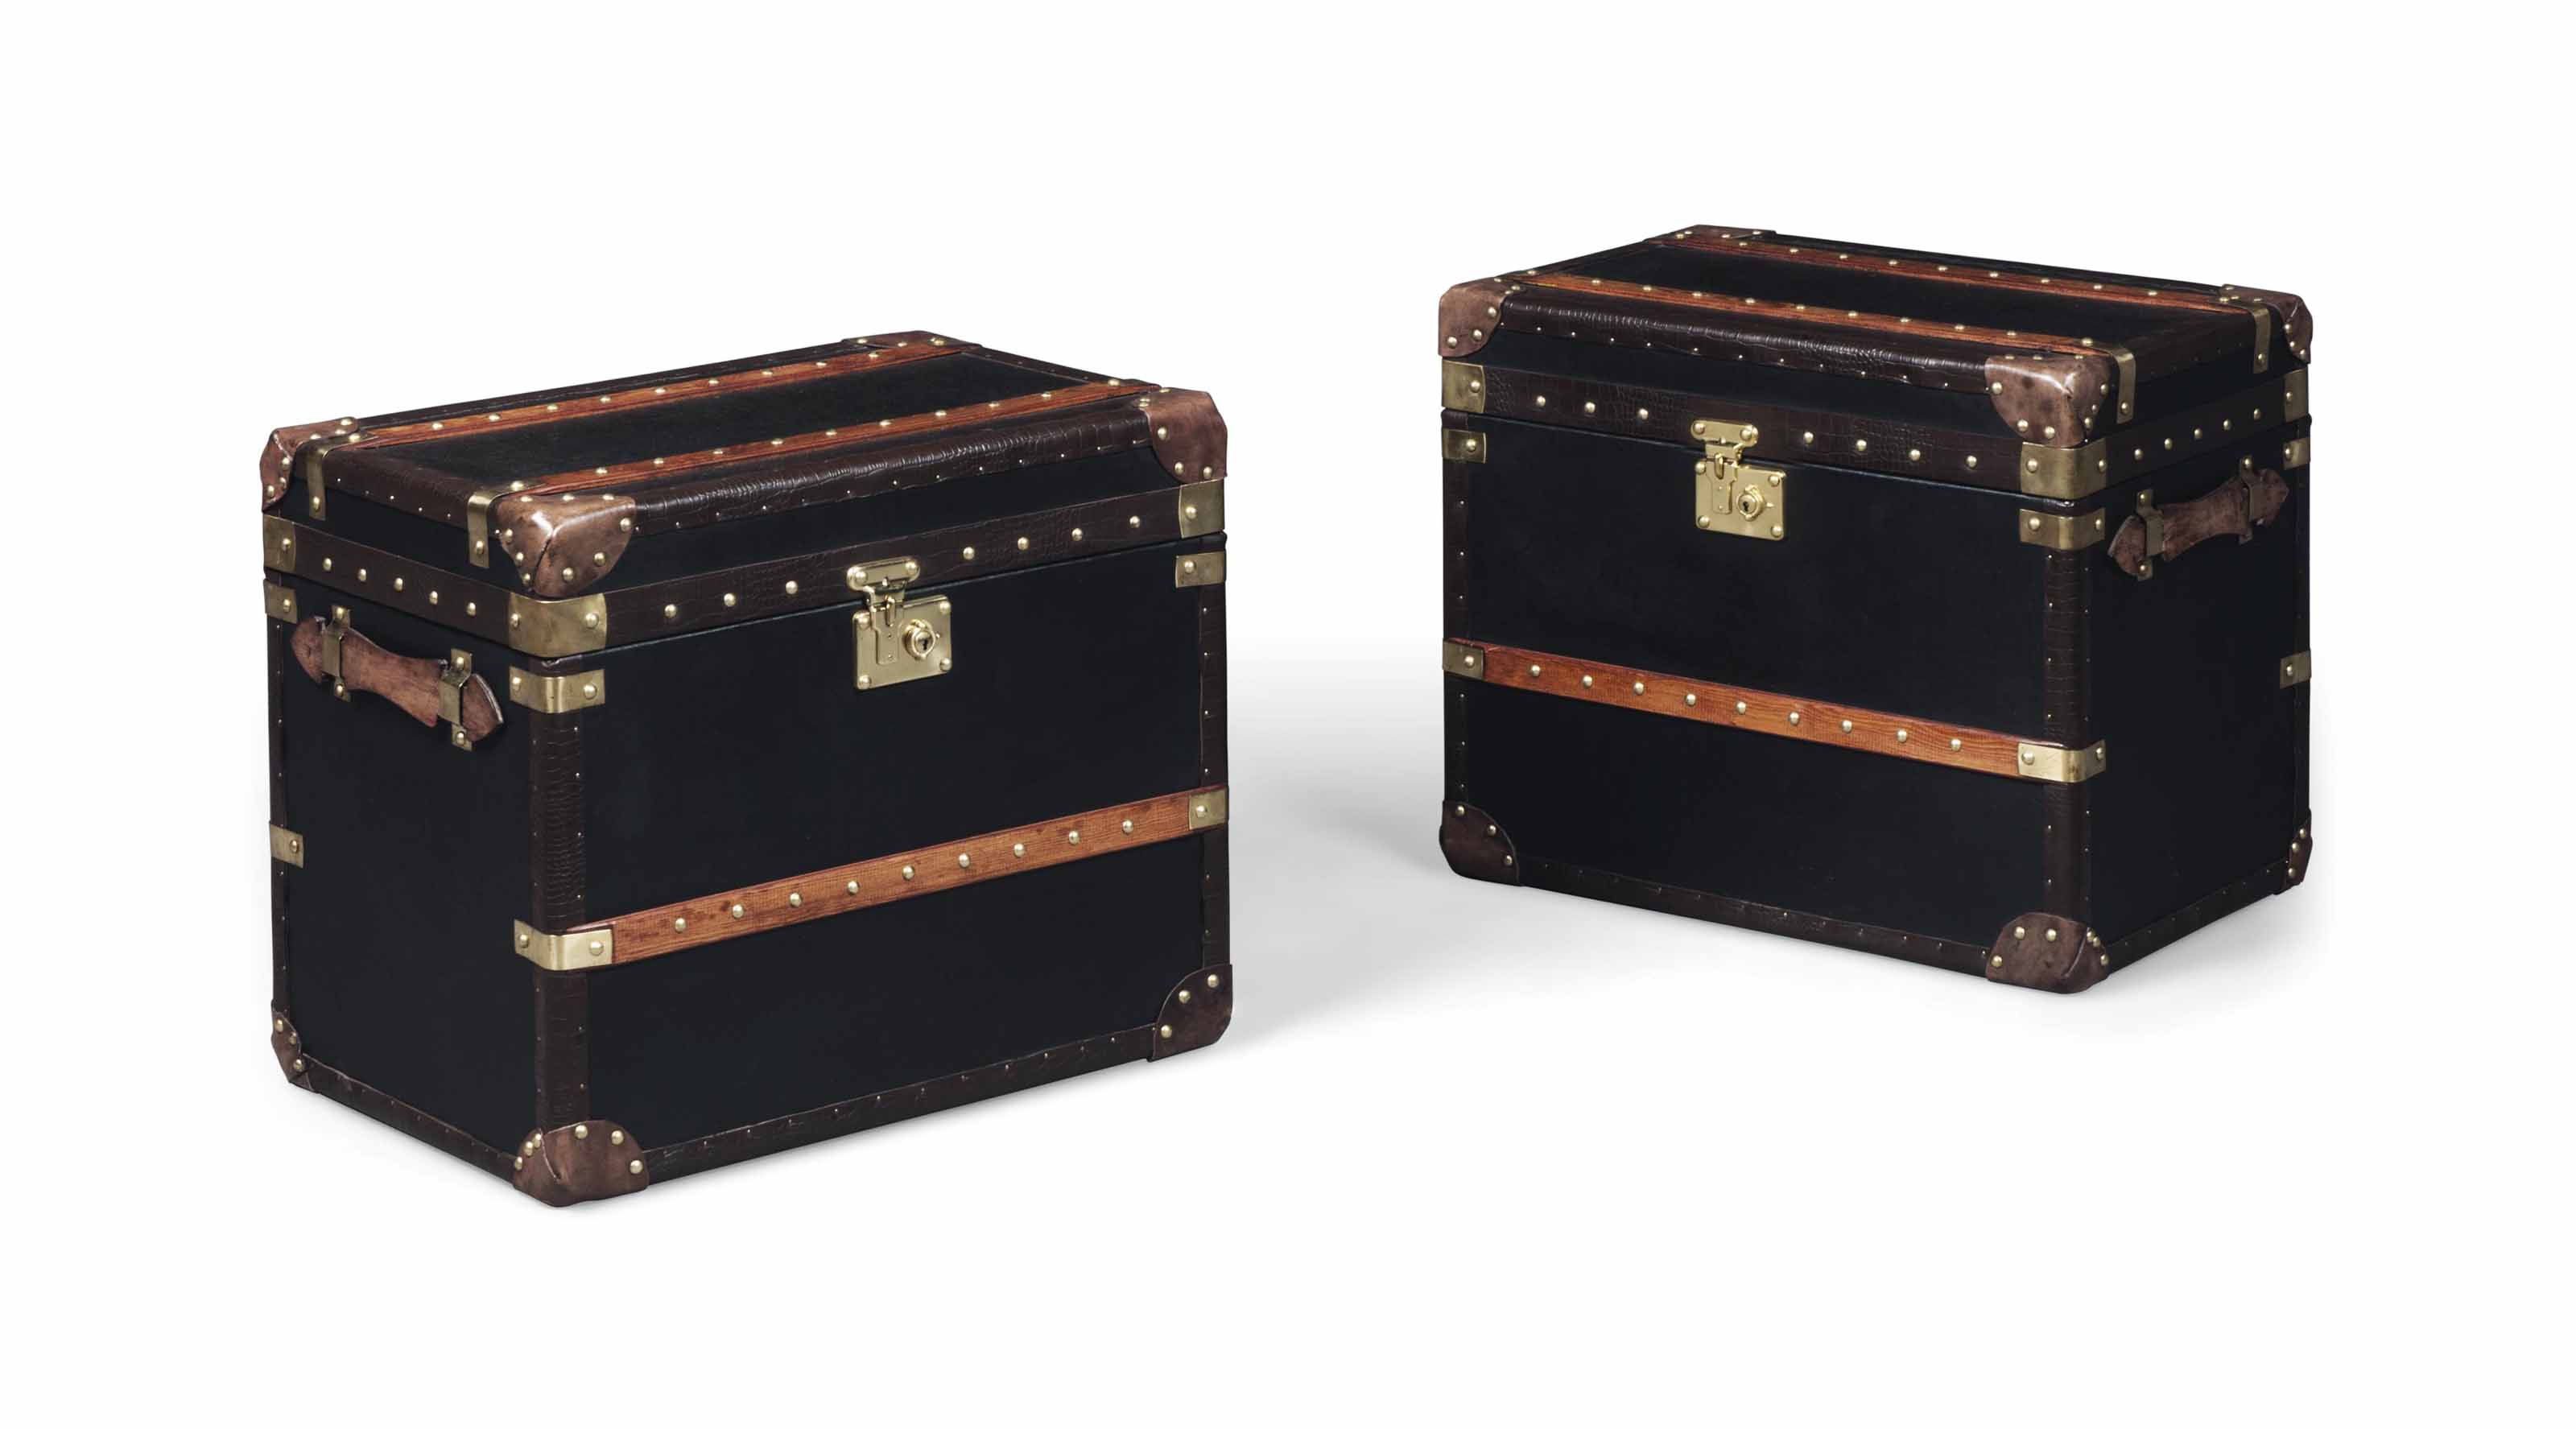 A PAIR OF BRASS-MOUNTED LEATHER TRUNKS